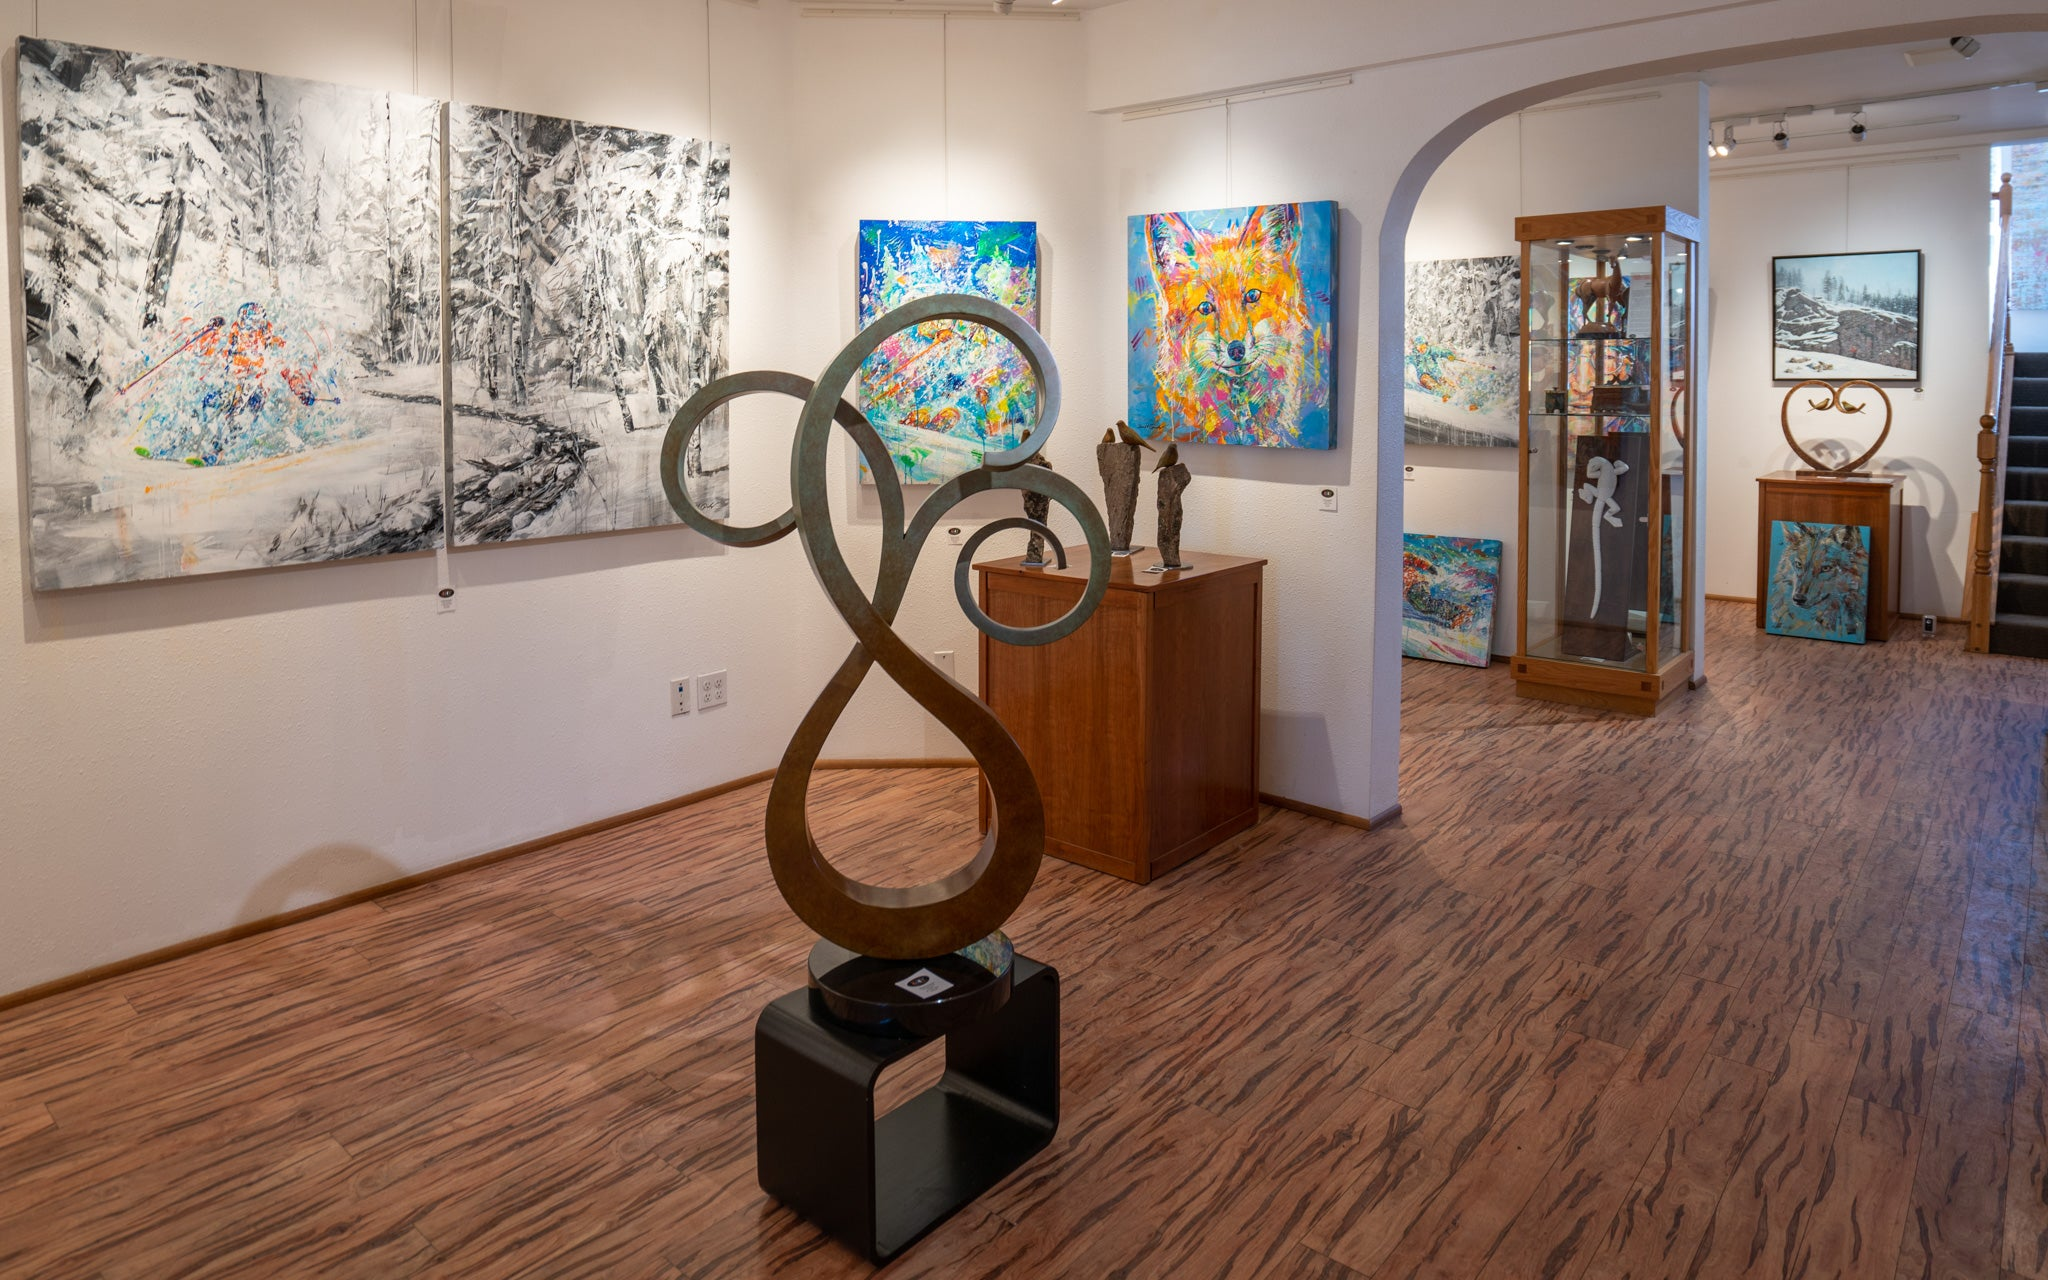 Raitman Art Galleries Breckenridge, Colorado. Featuring Original Paintings and Sculptures by David V. Gonzales, Maxine Bone, Gilberto Romero, and Ellen Woodbury